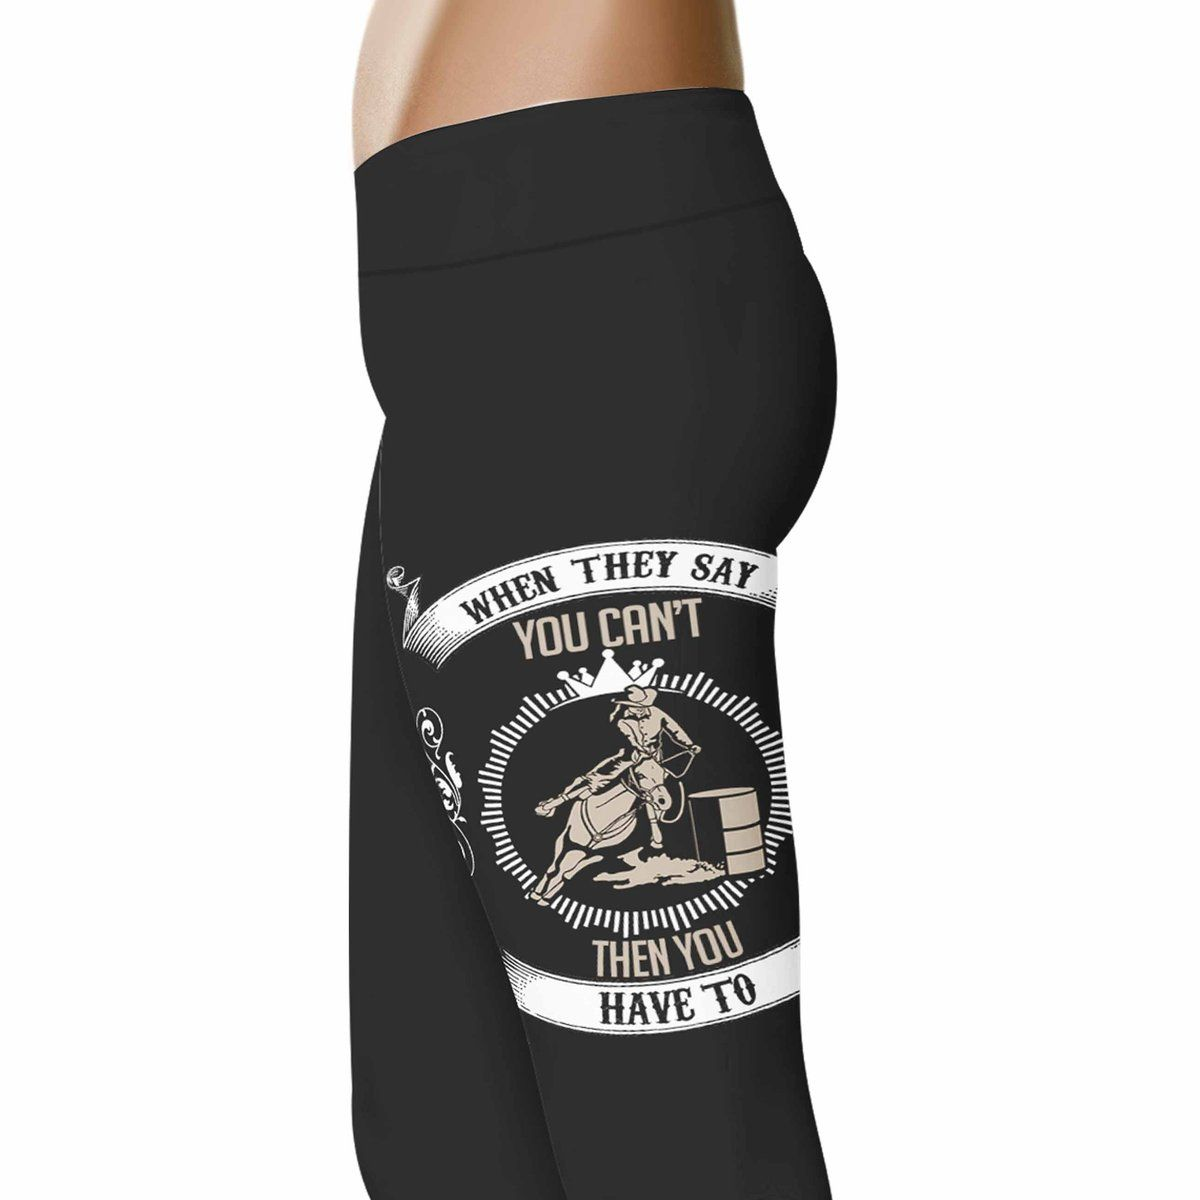 6a02161a1df71 When They Say You Can't - Barrel Racing Leggings | My Style | Barrel ...